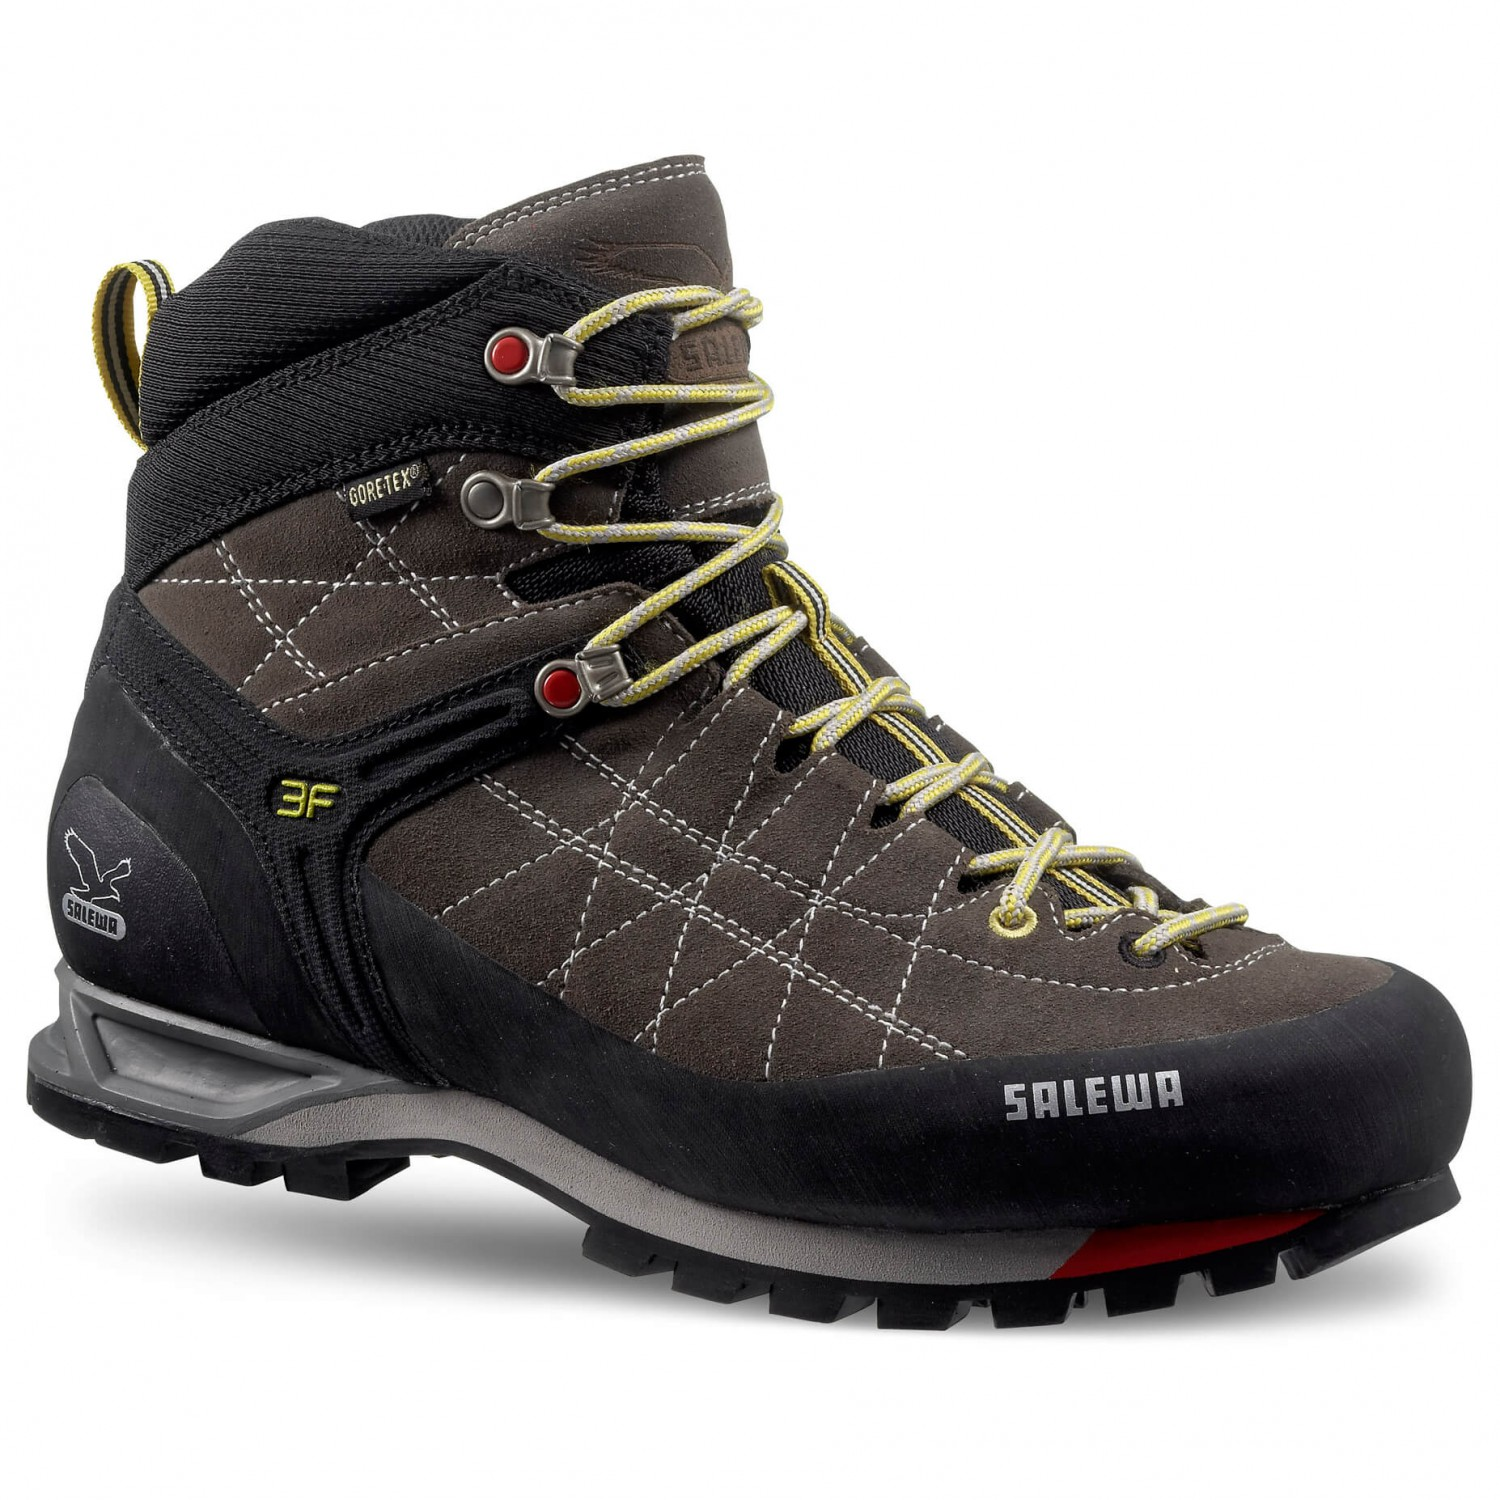 Salewa MTN Trainer Mid GTX Approachschuhe